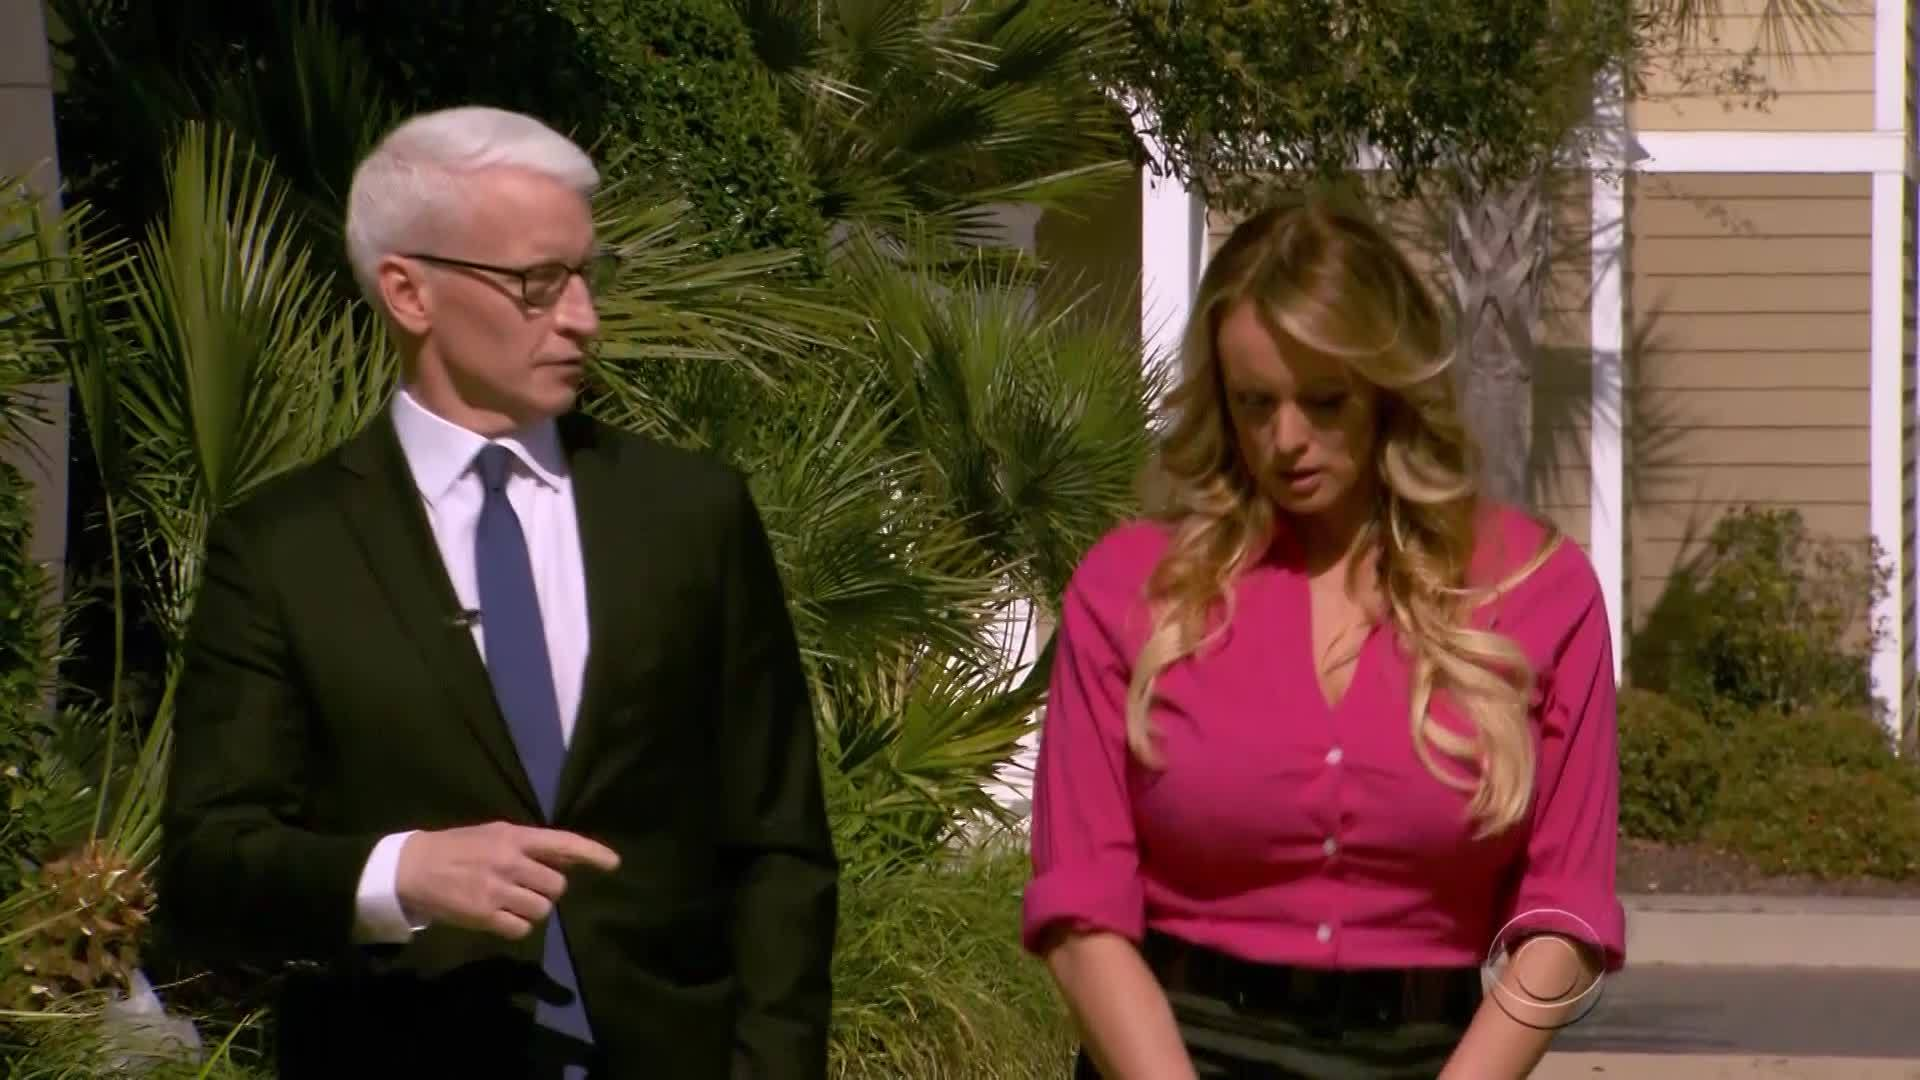 Stormy_Daniels_Claims_She_was_Threatened_0_20180326084648